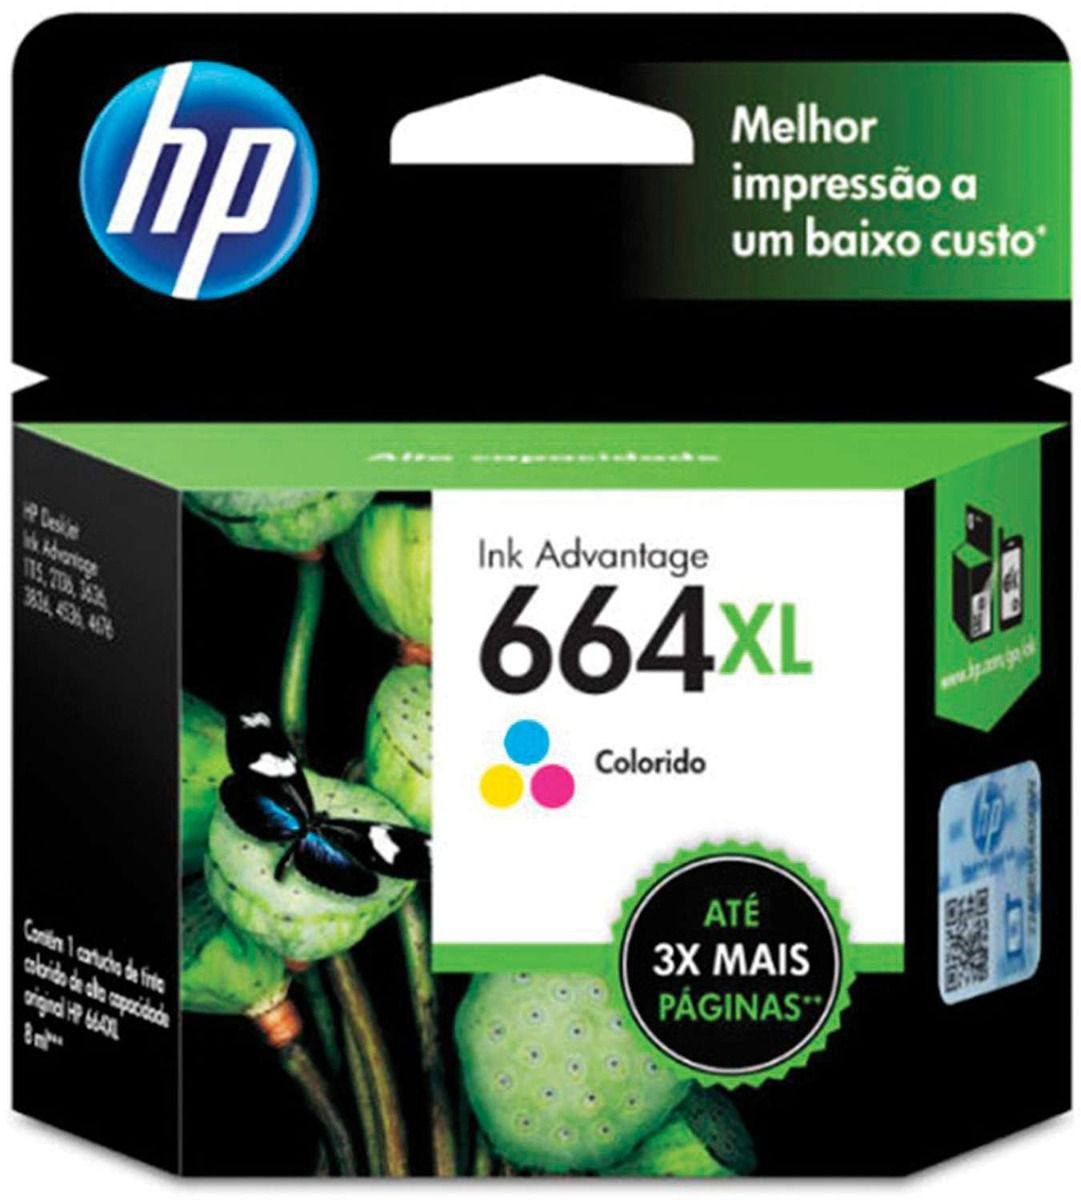 HP F6V30AB 664XL CARTUCHO DE TINTA COLOR(8,0 ml)@